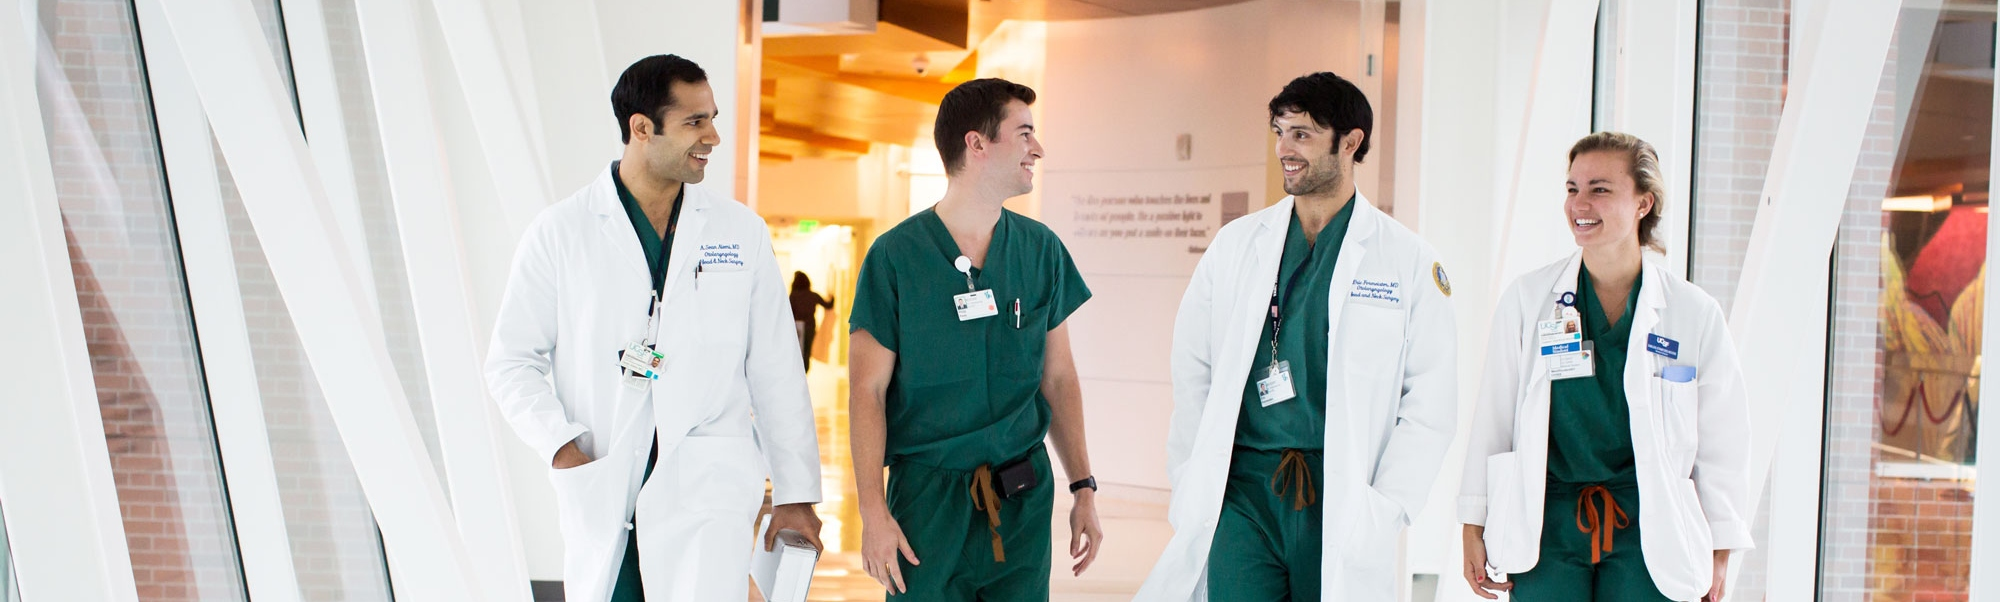 Residents and students walking through UCSF Medical Center